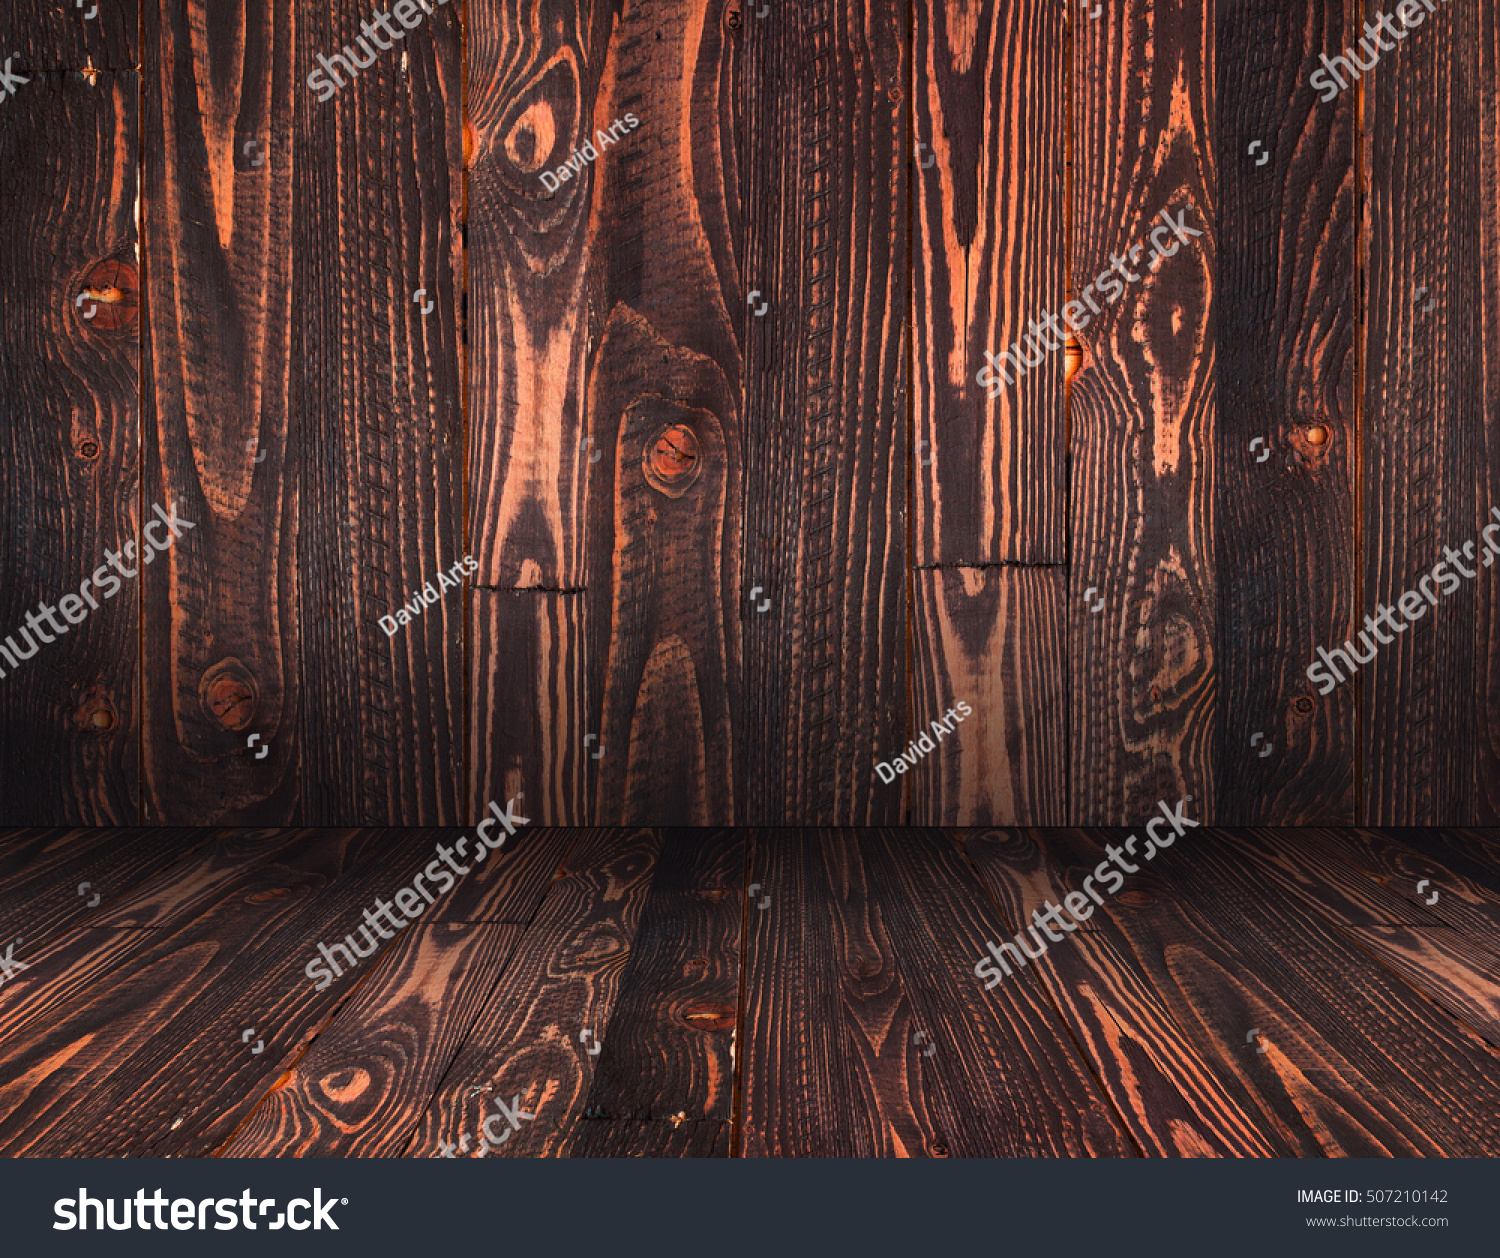 Natural Dark Wooden background. Old dirty wood tables or parquet with knots and holes and aged partculars. #507210142